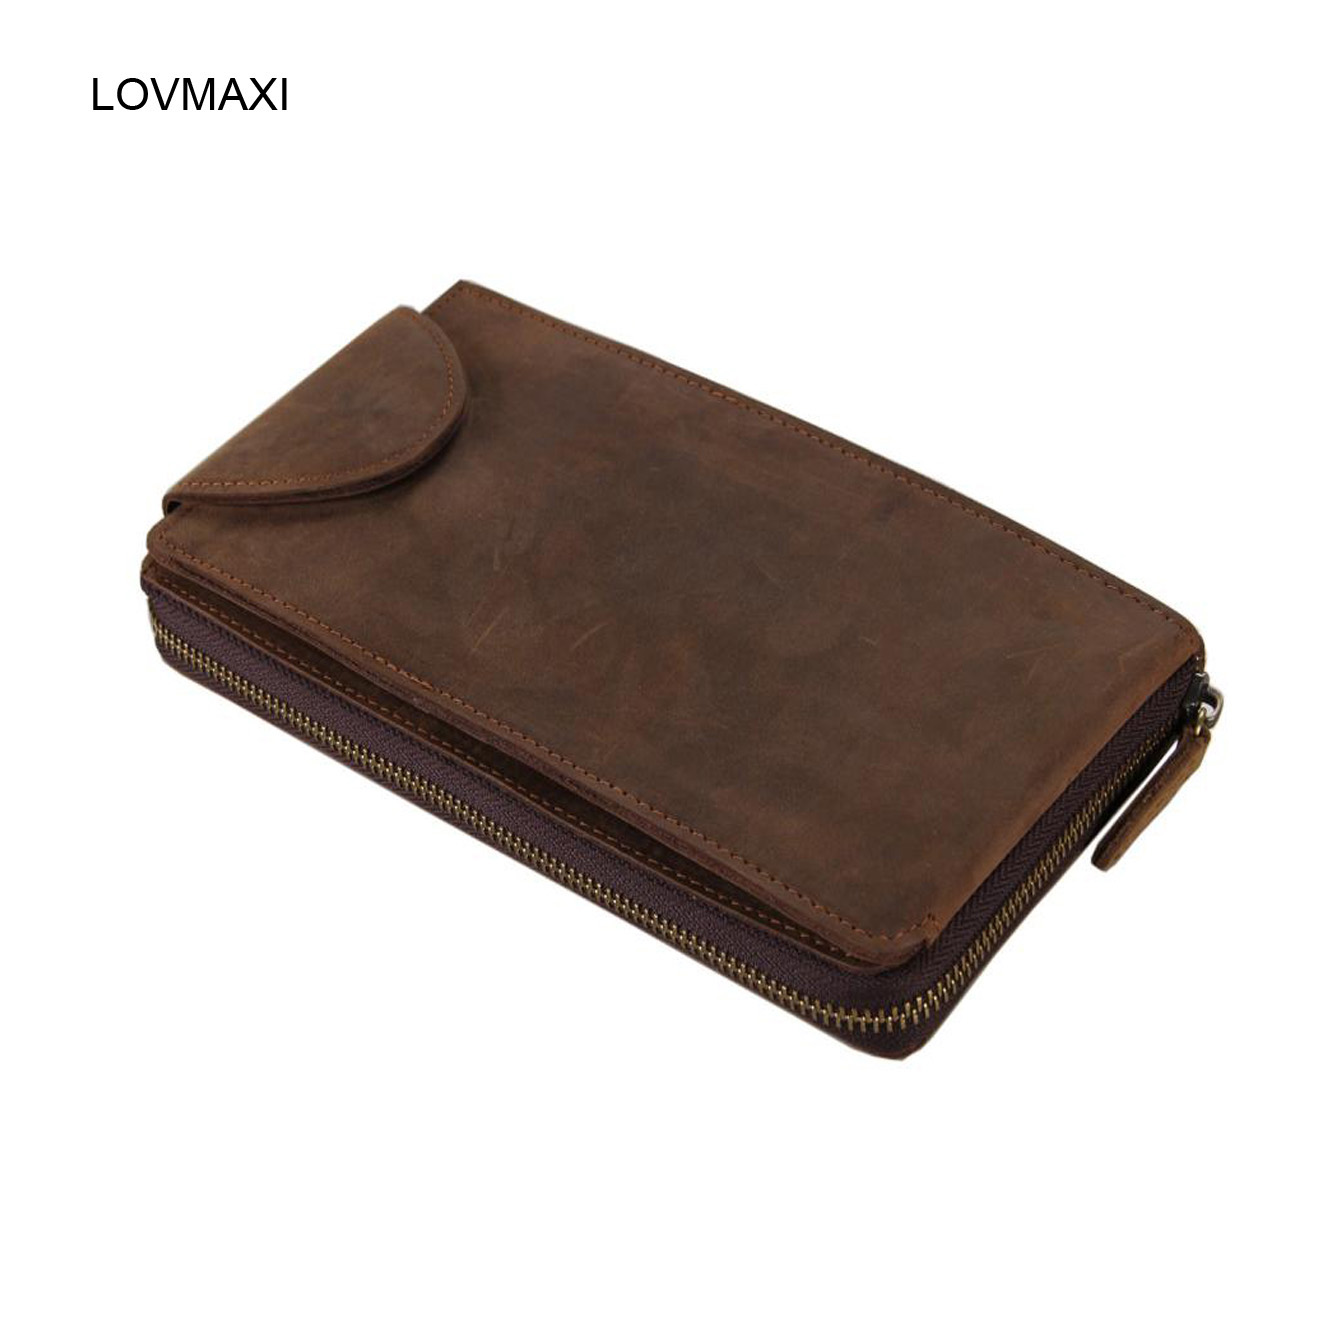 LOVMAXI Mens genuine leather wallets male clutch bag male crazy horse leather clutch bags Men business money clip purse<br>